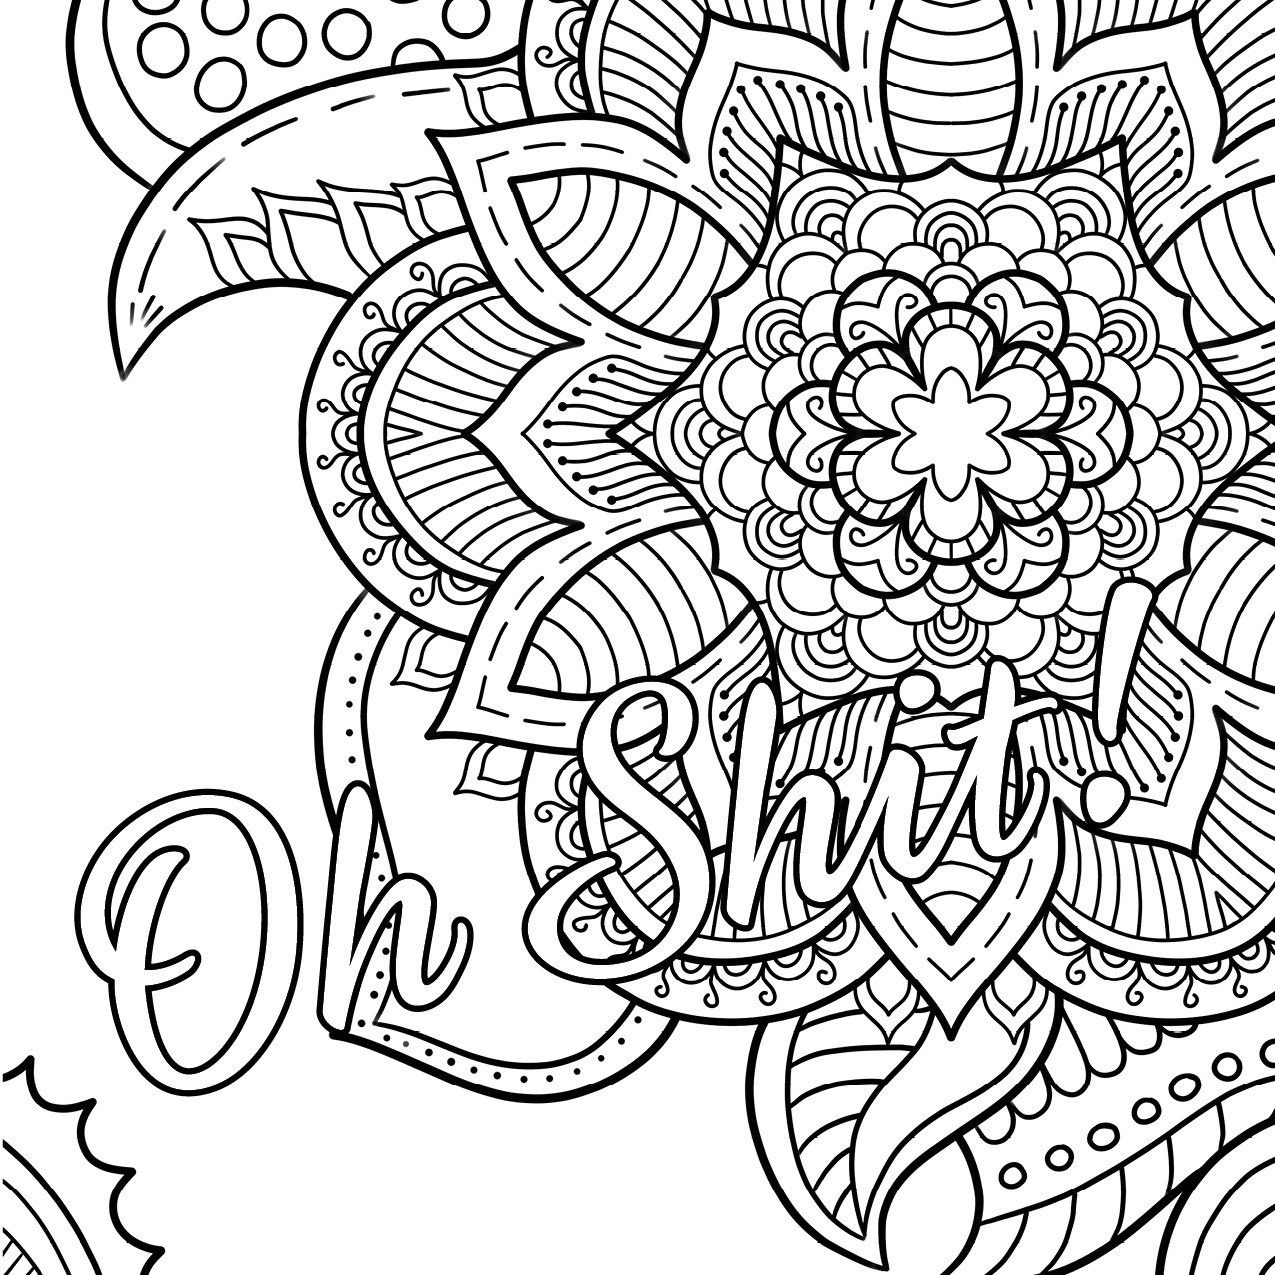 Swear Word Coloring Book #2 Free Printable Coloring Pages For Adults - Free Printable Swear Word Coloring Pages